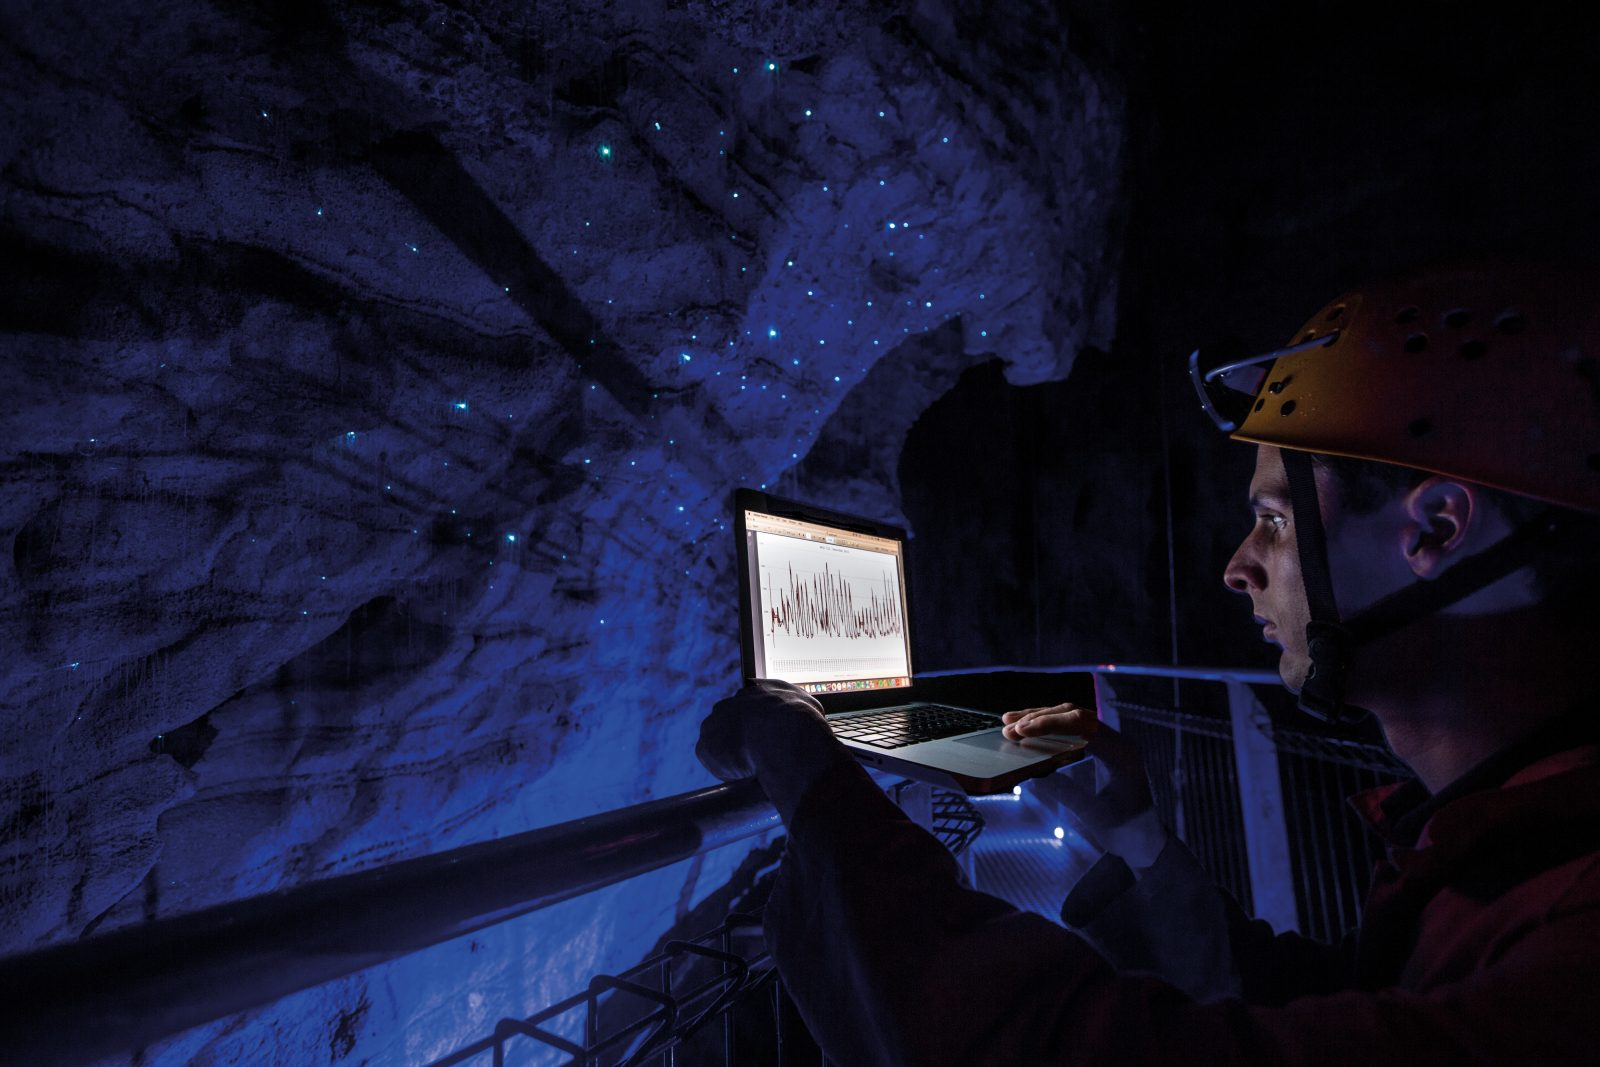 THL environment officer Carl Fischer, below, tracks carbon dioxide levels daily in Ruakuri and the Waitomo Glowworm Cave. If levels get too high, the cave formations could begin to corrode, and Fischer puts a halt on tours. Humidity, water levels and glowworm numbers are also monitored.